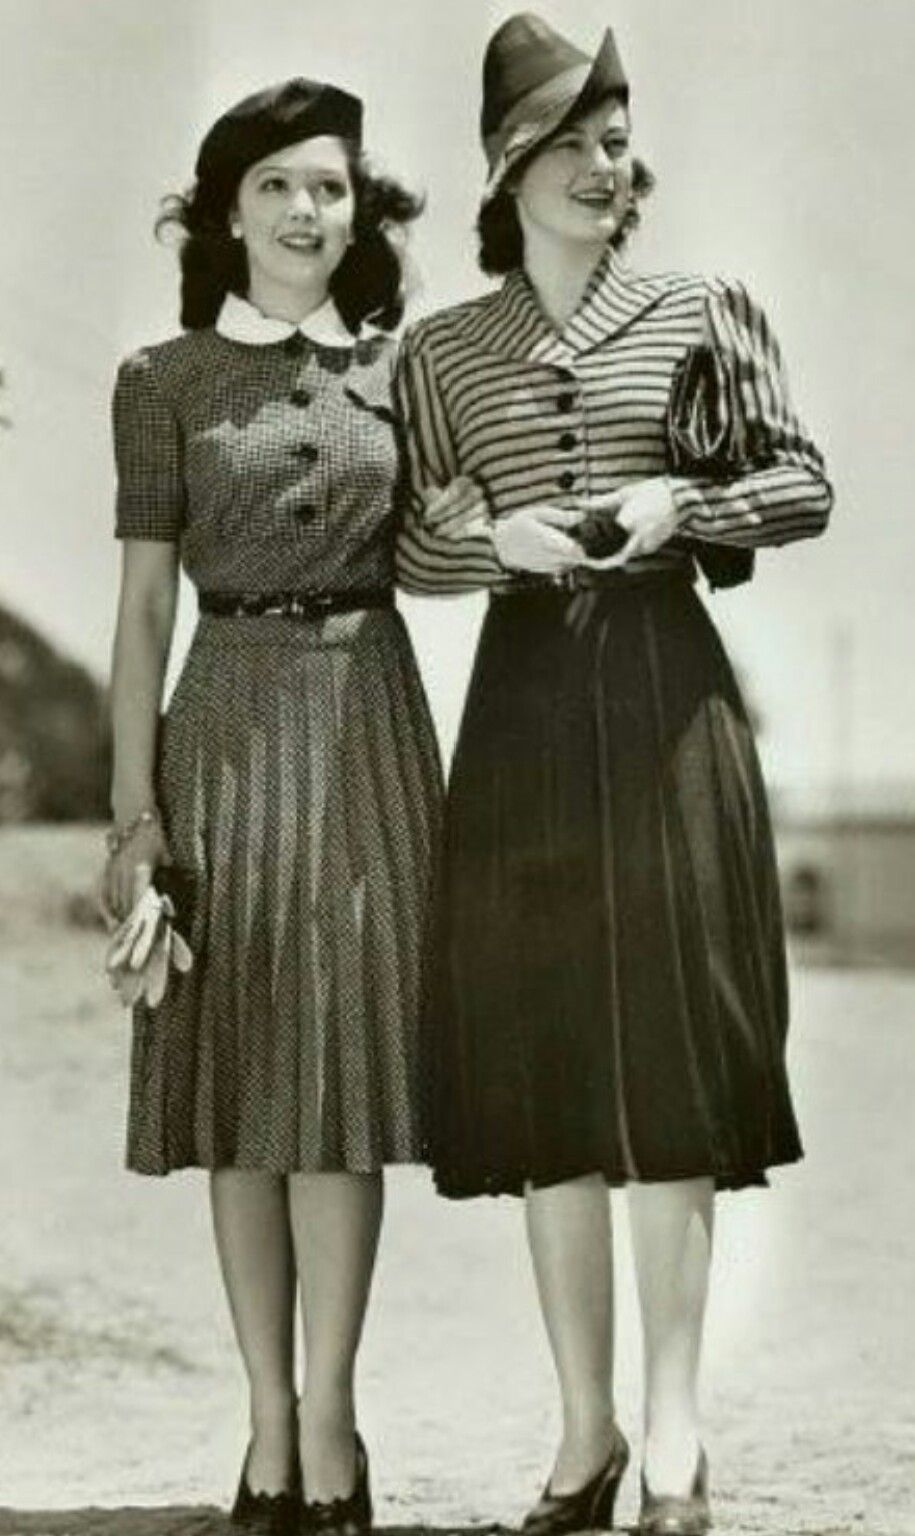 1940s Fashion And Style Trends In 40 Stunning Pictures: Forties Fashion, 1940s Fashion